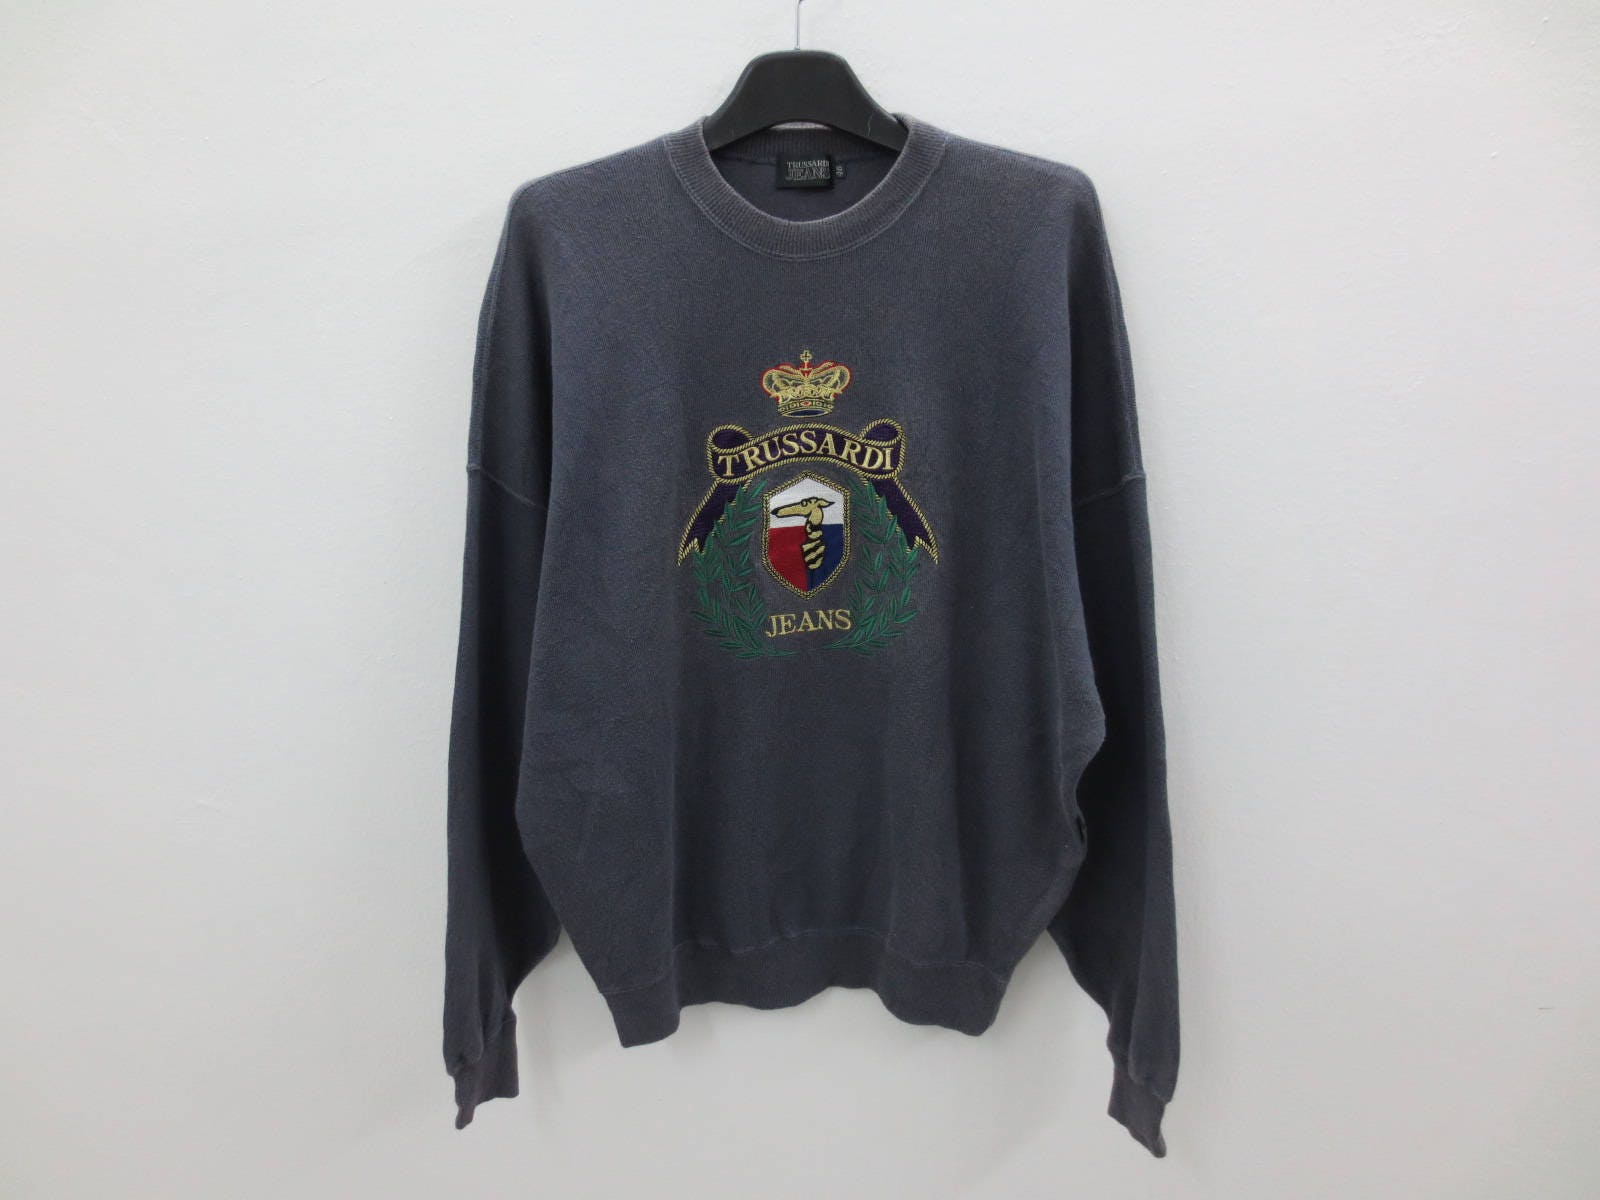 Rare!! Vintage TRUSSARDI Jeans Men Clothing Sweatshirt Pullover Jumper Embroidery Spellout Logo Green Colour Large Size KExv81mGBJ